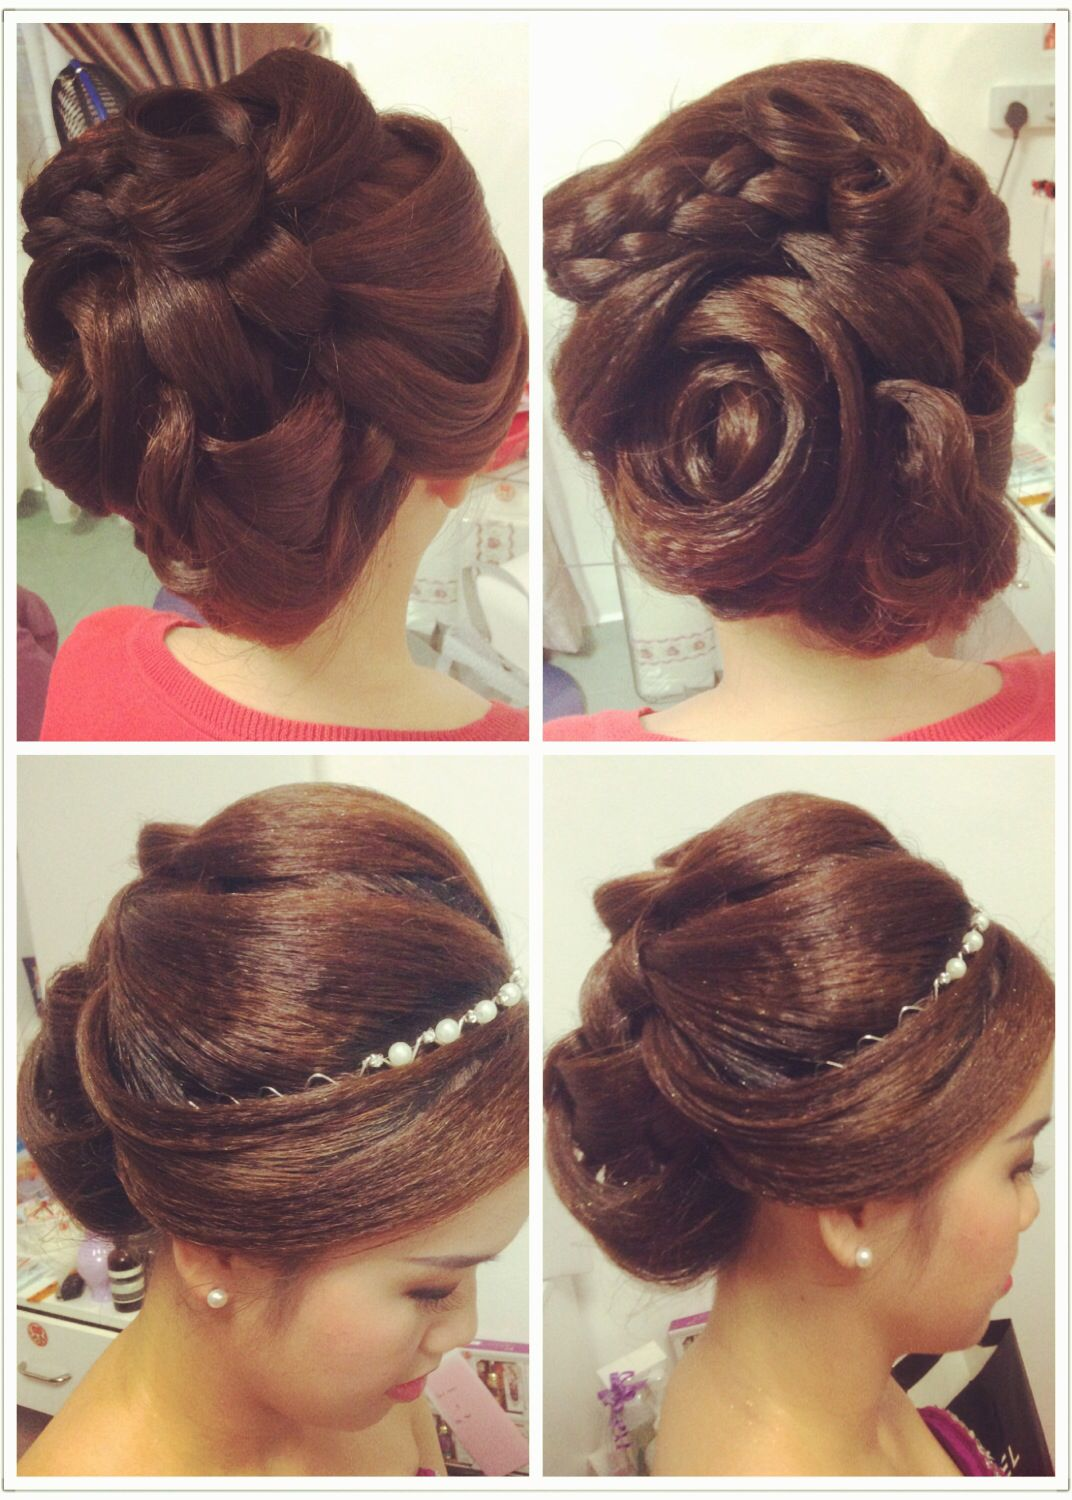 bridal hair design by vanessa | bridal make up & hairstyle